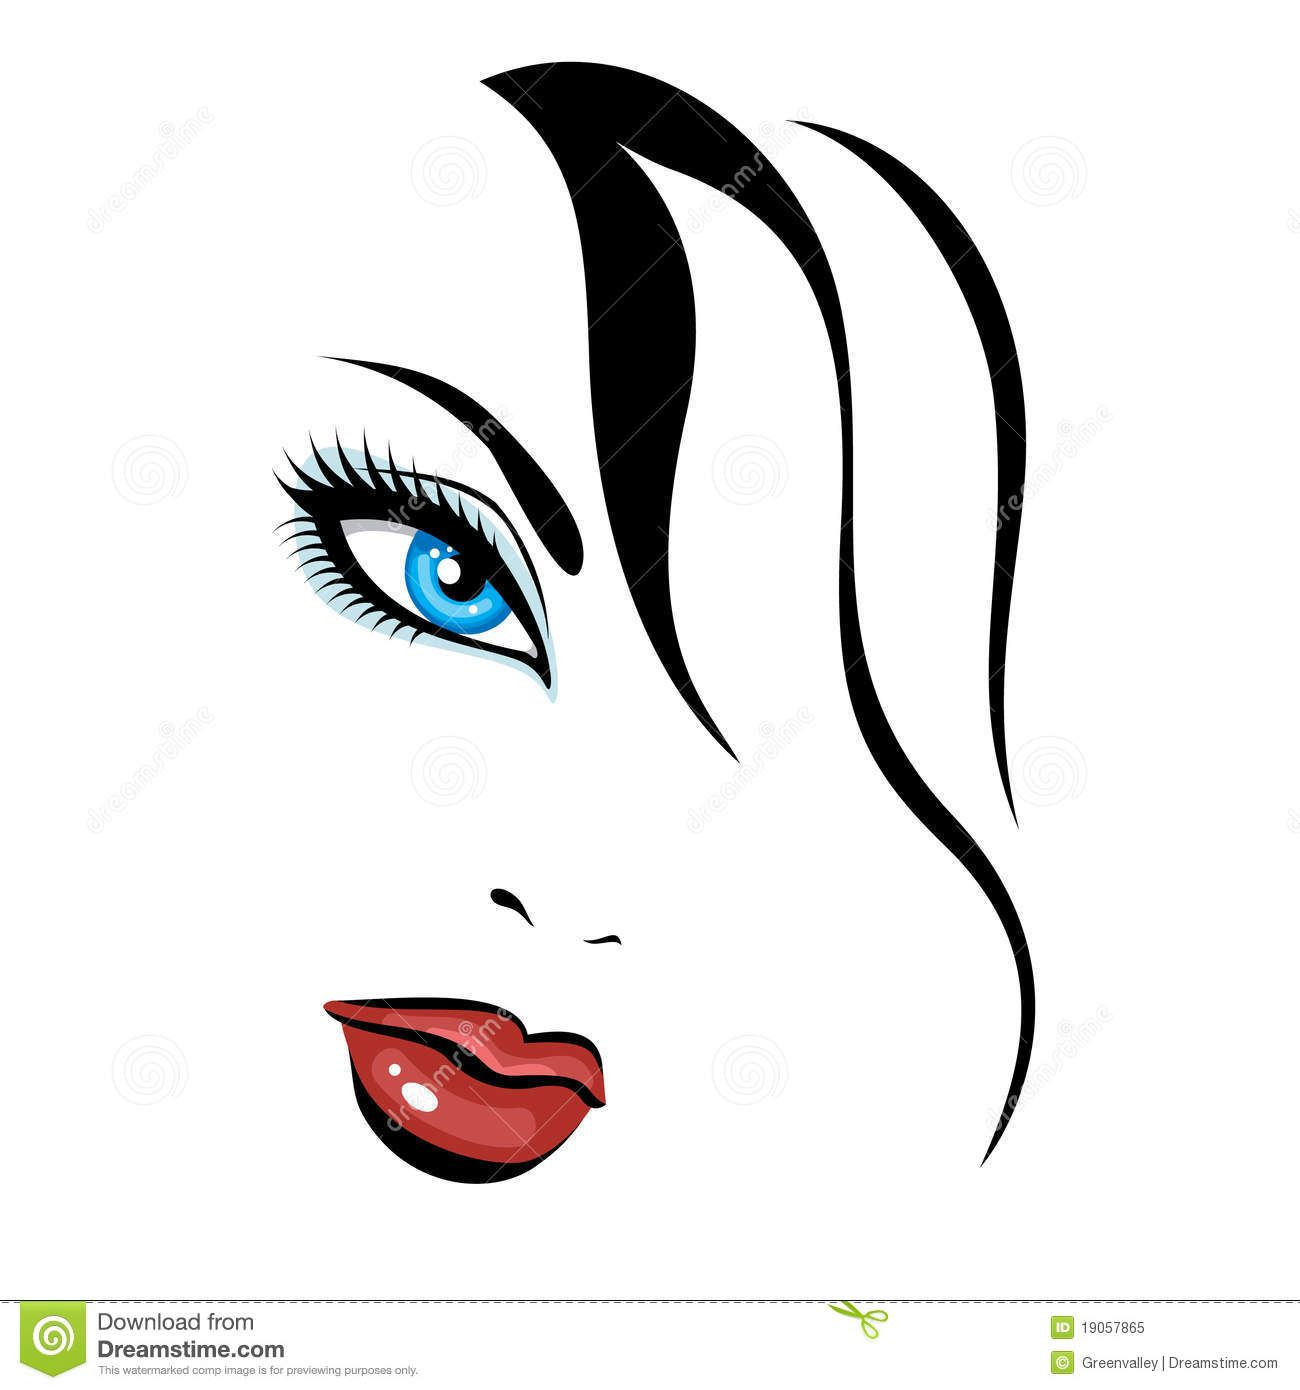 Faces clipart beautiful. Girl face royalty free